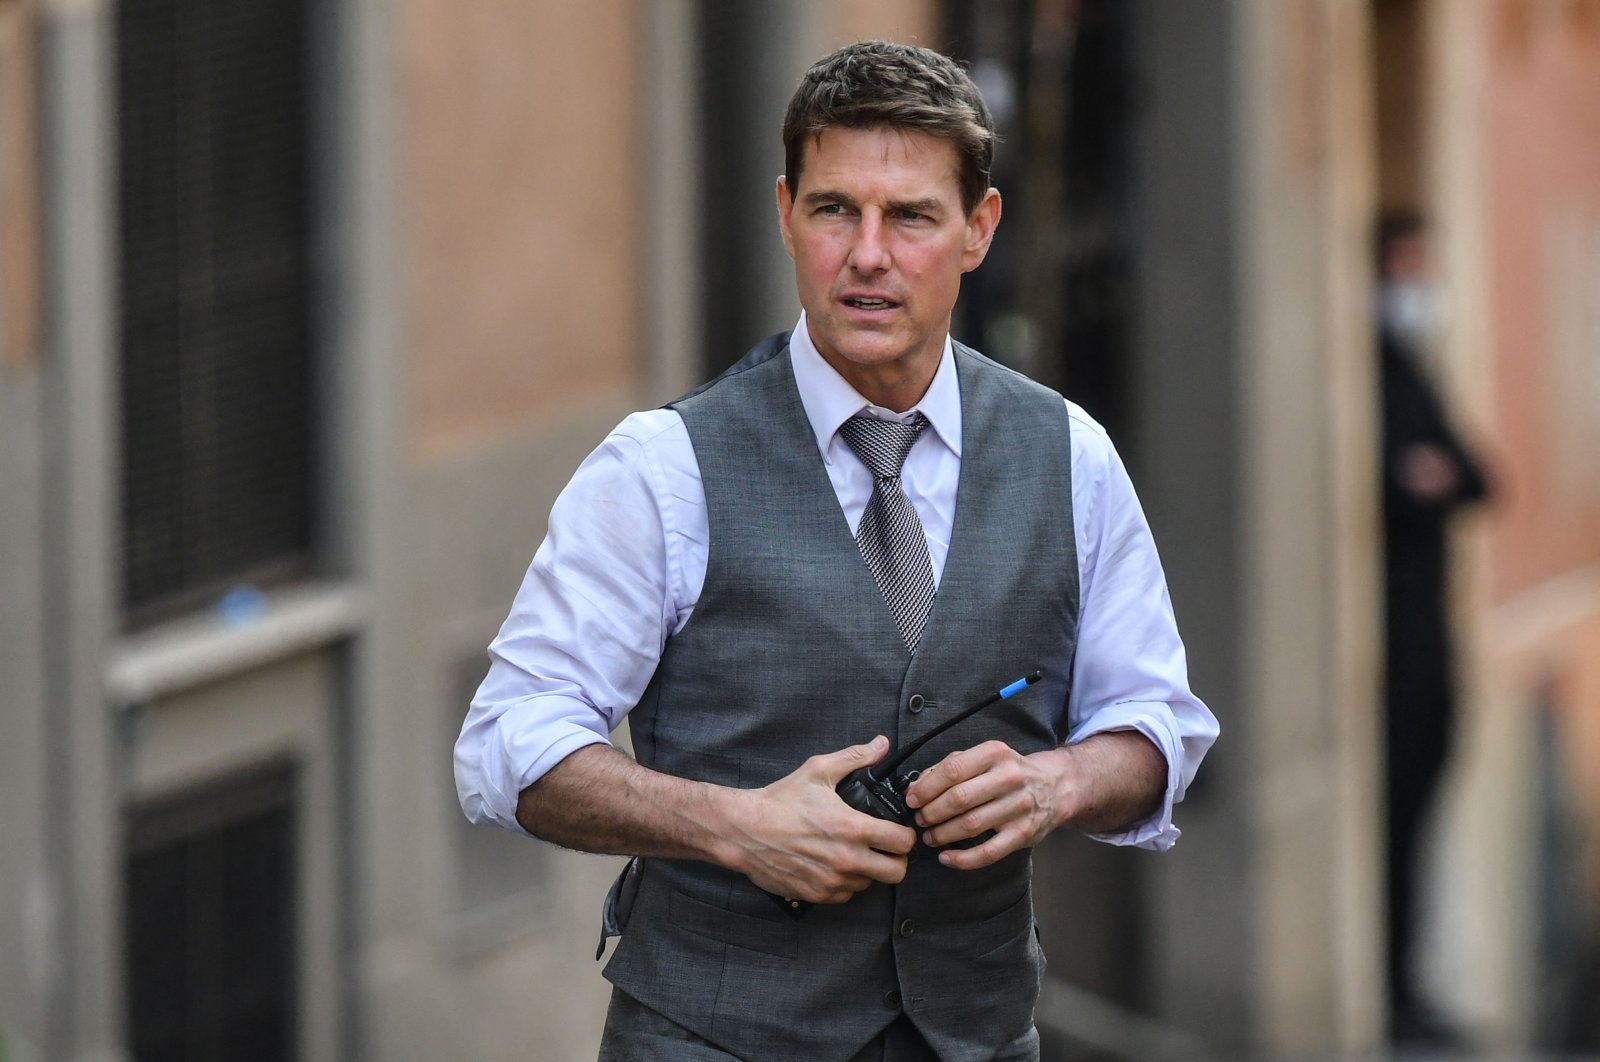 """American actor Tom Cruise can be seen during the filming of his new movie """"Mission: Impossible 7"""" in Rome, Italy, Oct. 6, 2020. (AFP Photo)"""